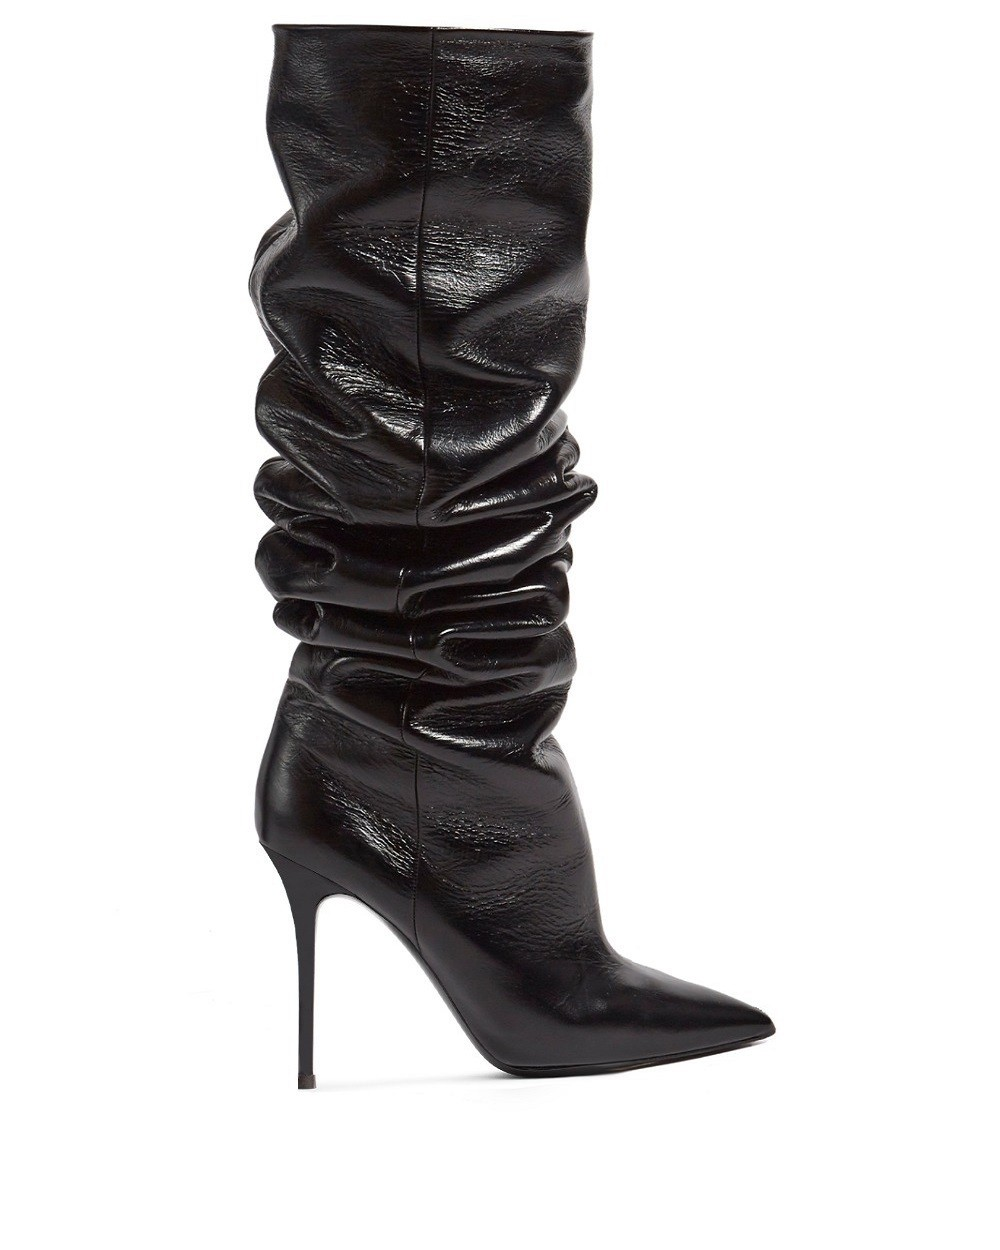 Women's Long Boot Black Pointed Toe Pleated Folds Thin Heels High Heel Knee High Boots Genuine Leather Shoes Woman Botas De Muje